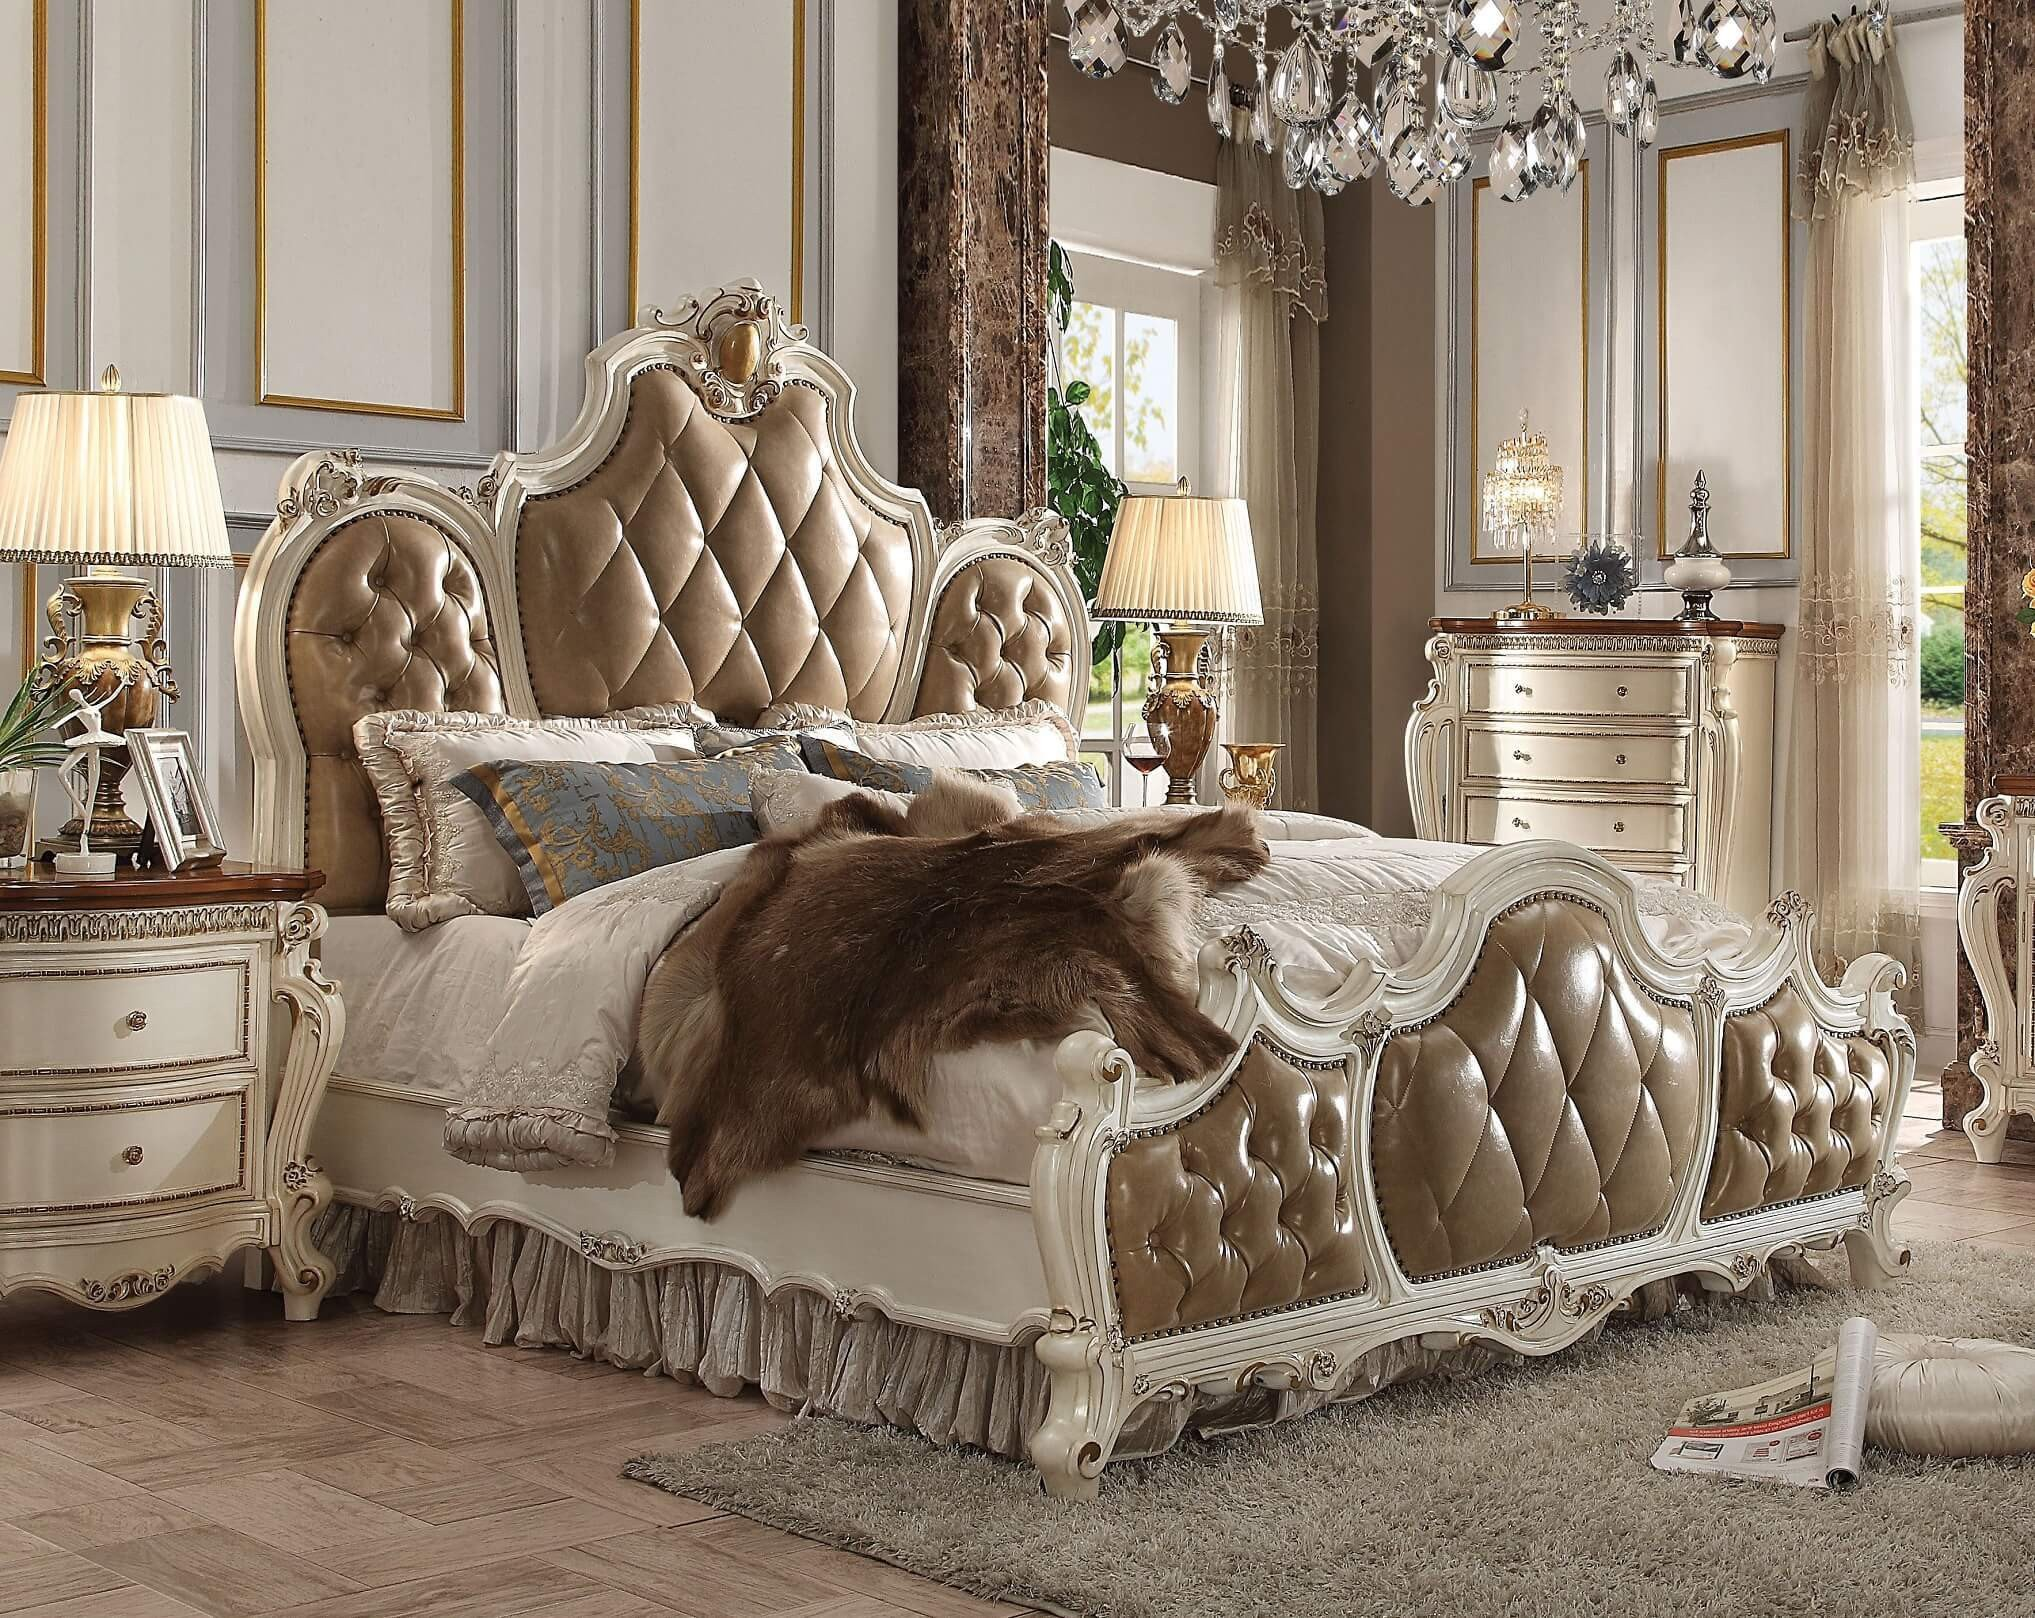 Acme Furniture Bedroom Set Beautiful Picardy Leather Upholstered Bed Acme Q